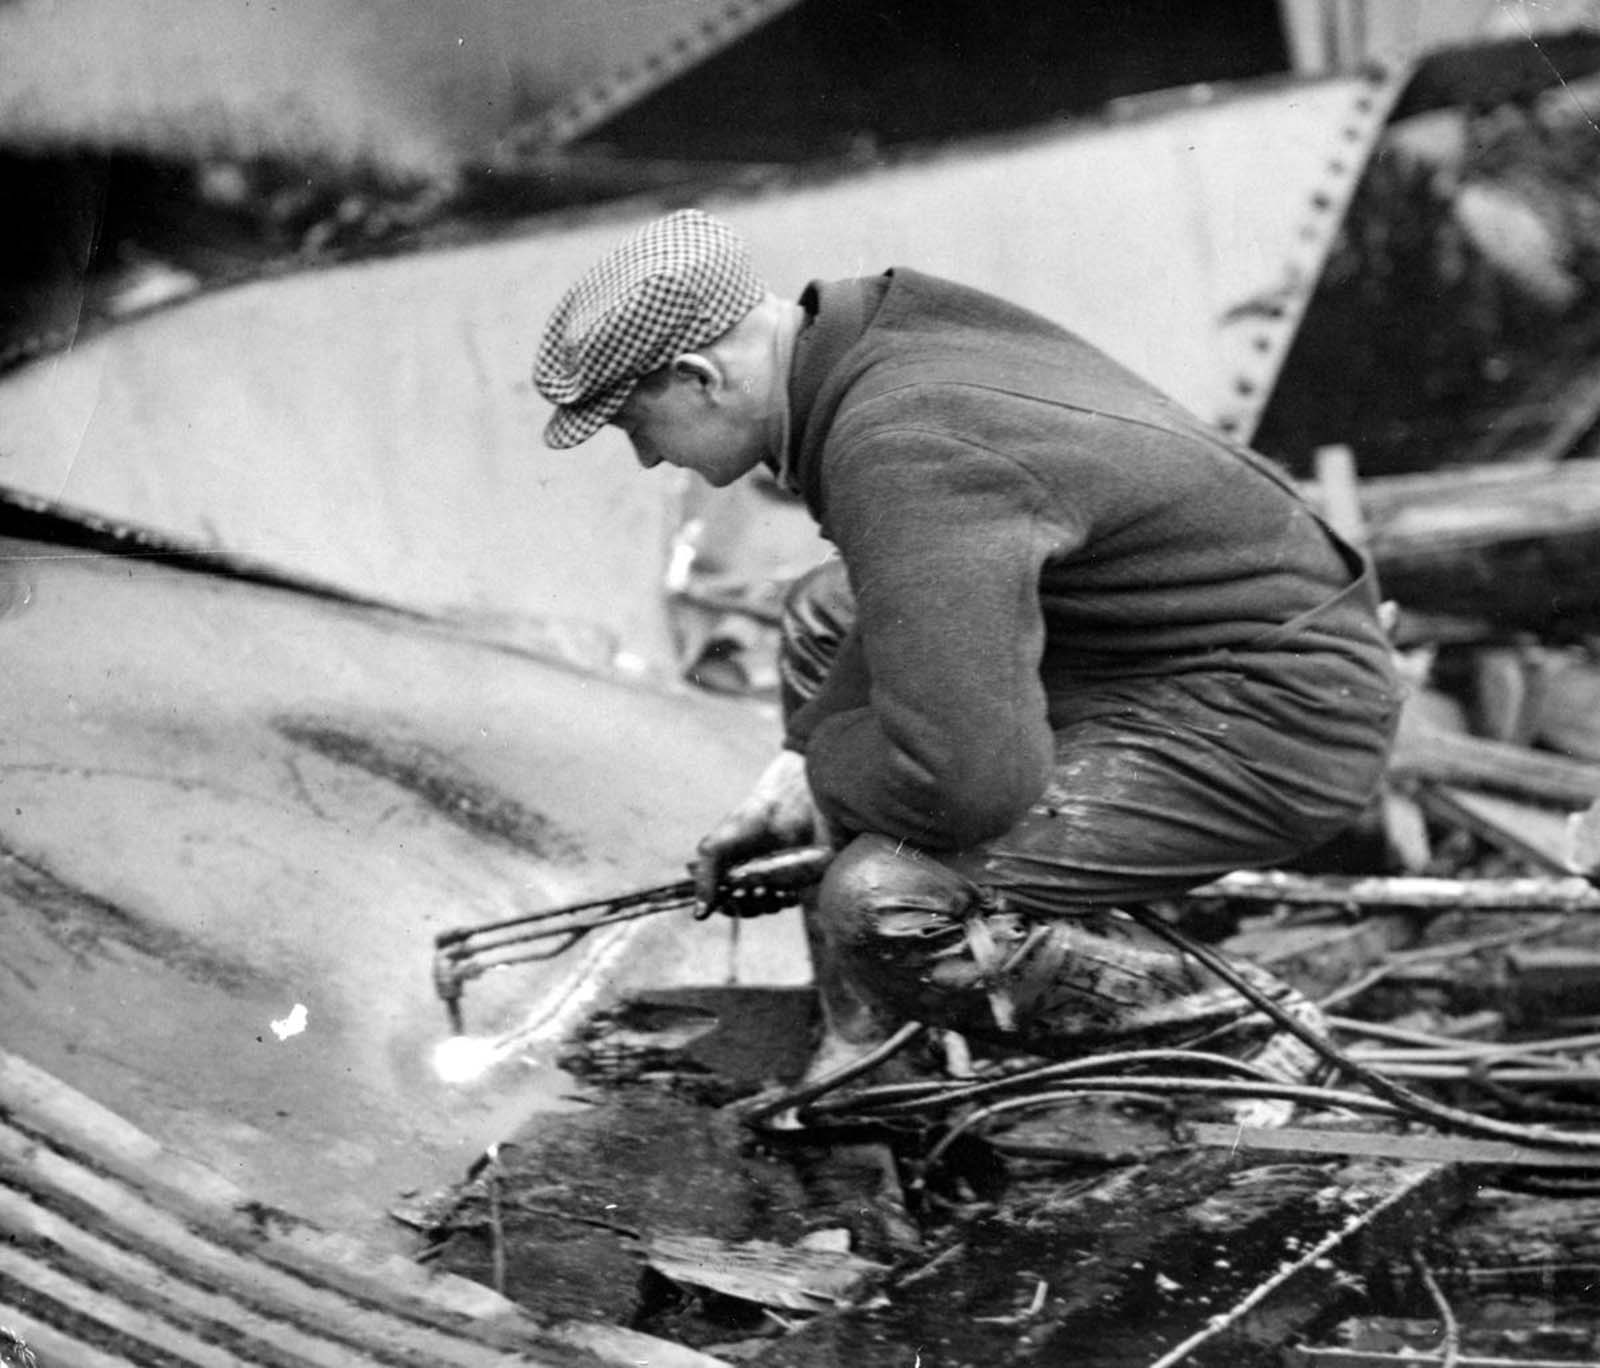 "Welders carefully began cutting up the molasses tank with torches in the search for bodies on Jan. 20, 1919, five days after the Great Molasses Flood in Boston's North End. Even though firemen constantly sprayed water on the twisted wreckage, it wasn't until the city ordered powerful streams from its fireboat that the molasses began to dissipate. The salt water of the harbor ""cut"" the molasses and eventually the welders could see the structure of the original tank."